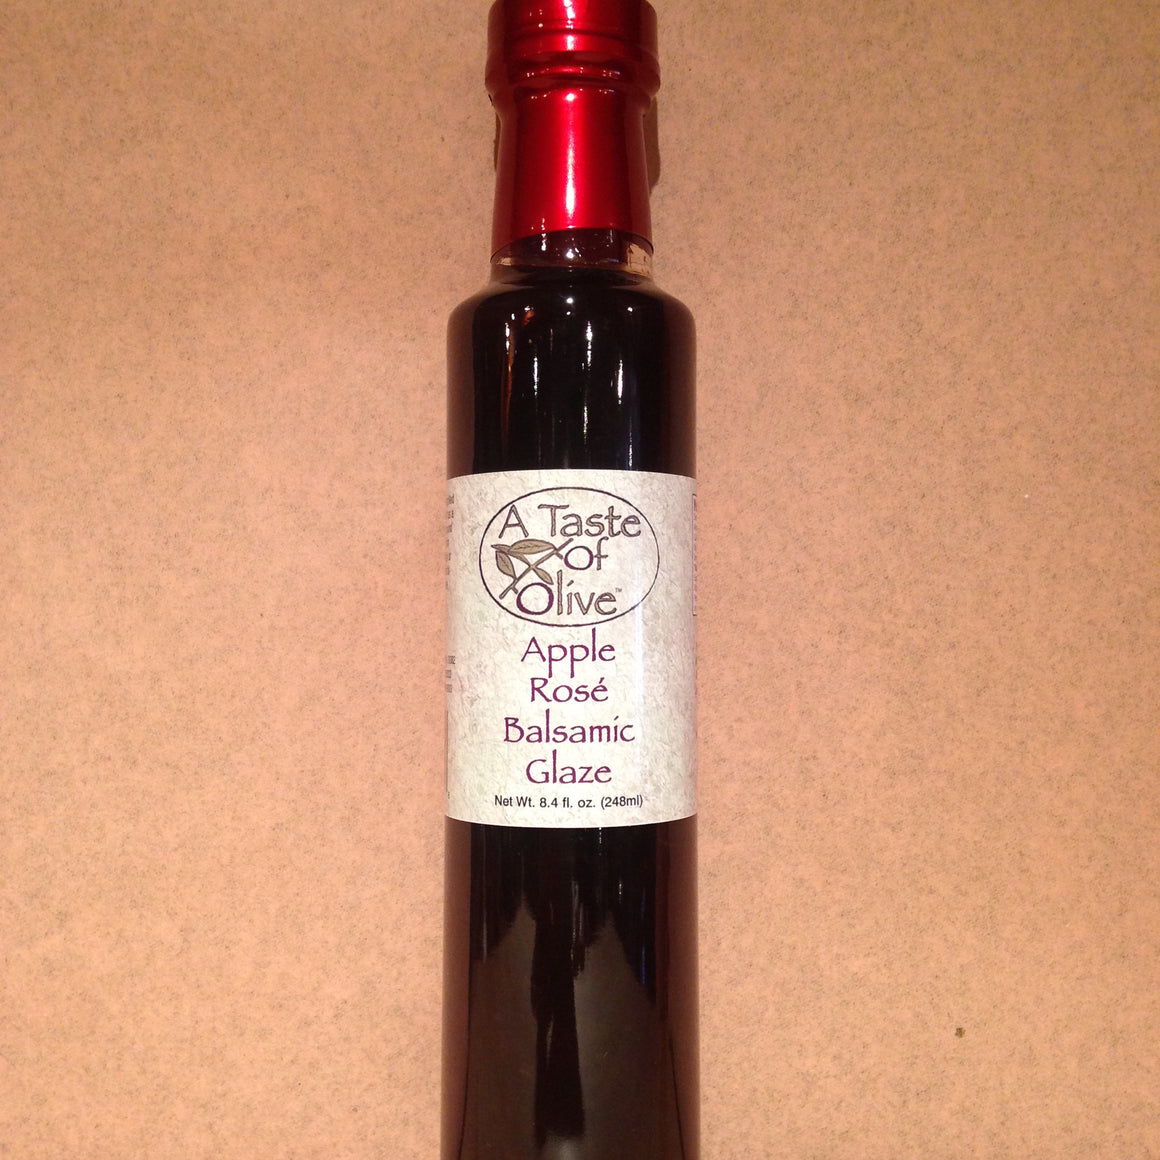 Apple Rose Balsamic Glaze - A Taste of Olive